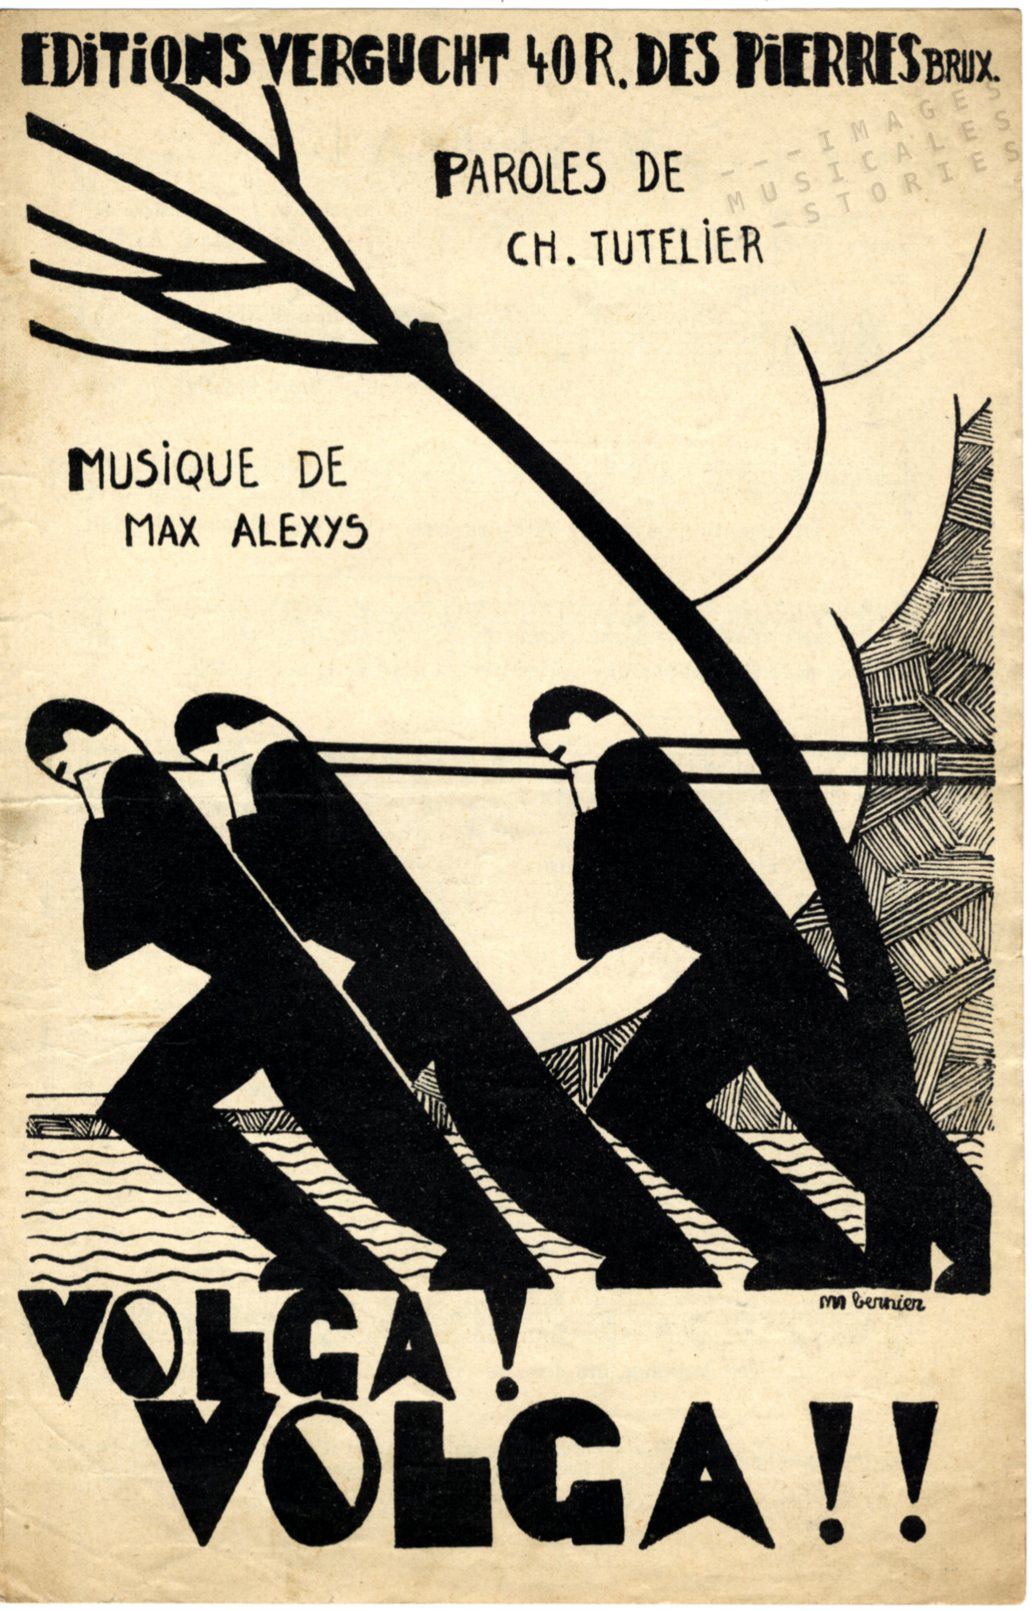 Cover for the sheet music 'Volga!' by Max Alexis and Charles Tutelier, published by Vergucht and illustrated by Alfred Mariano Bernier